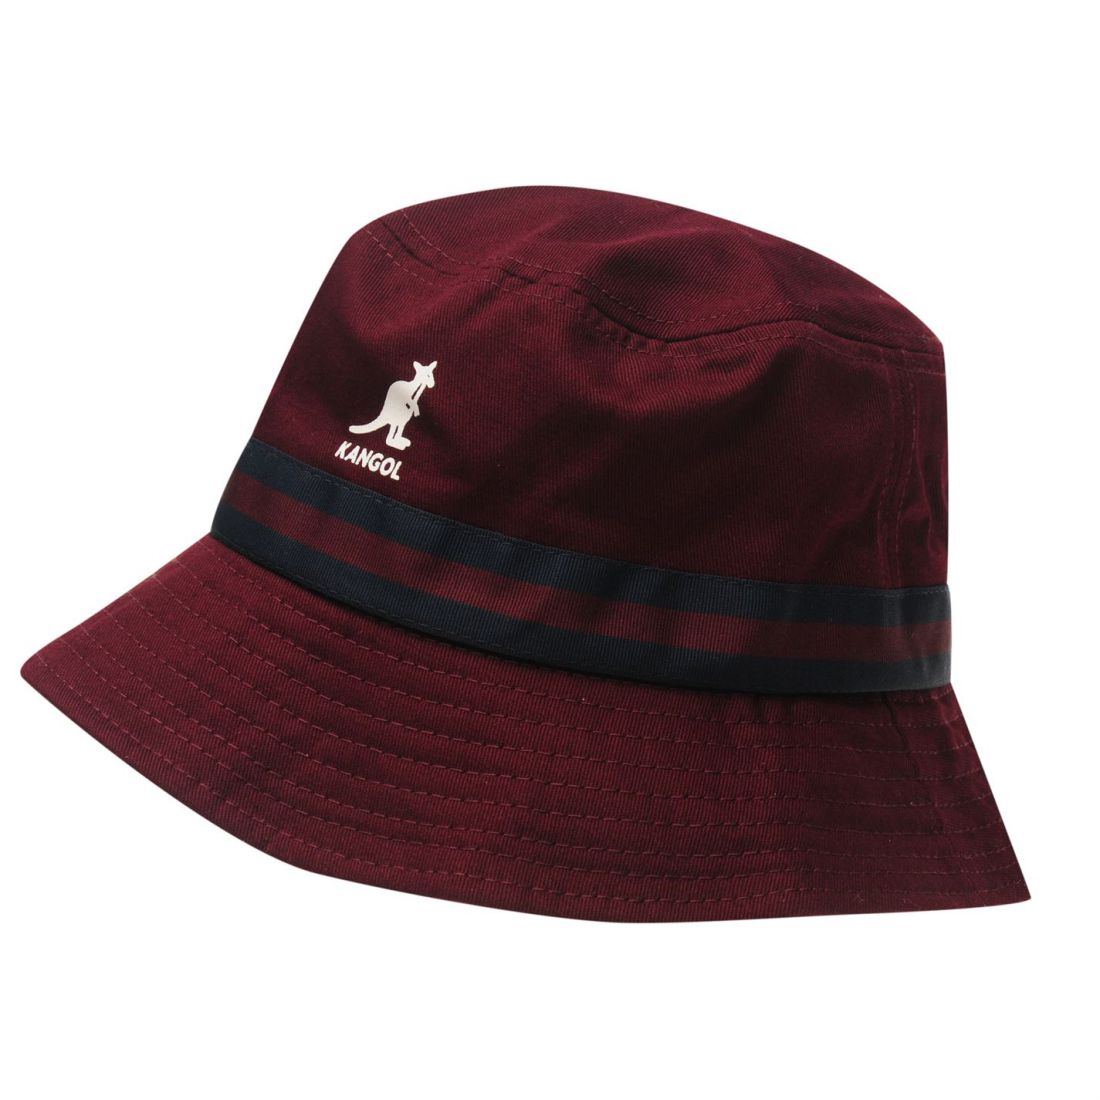 7fa72697c4890 Kangol Mens Stripe Bucket Hat Cotton